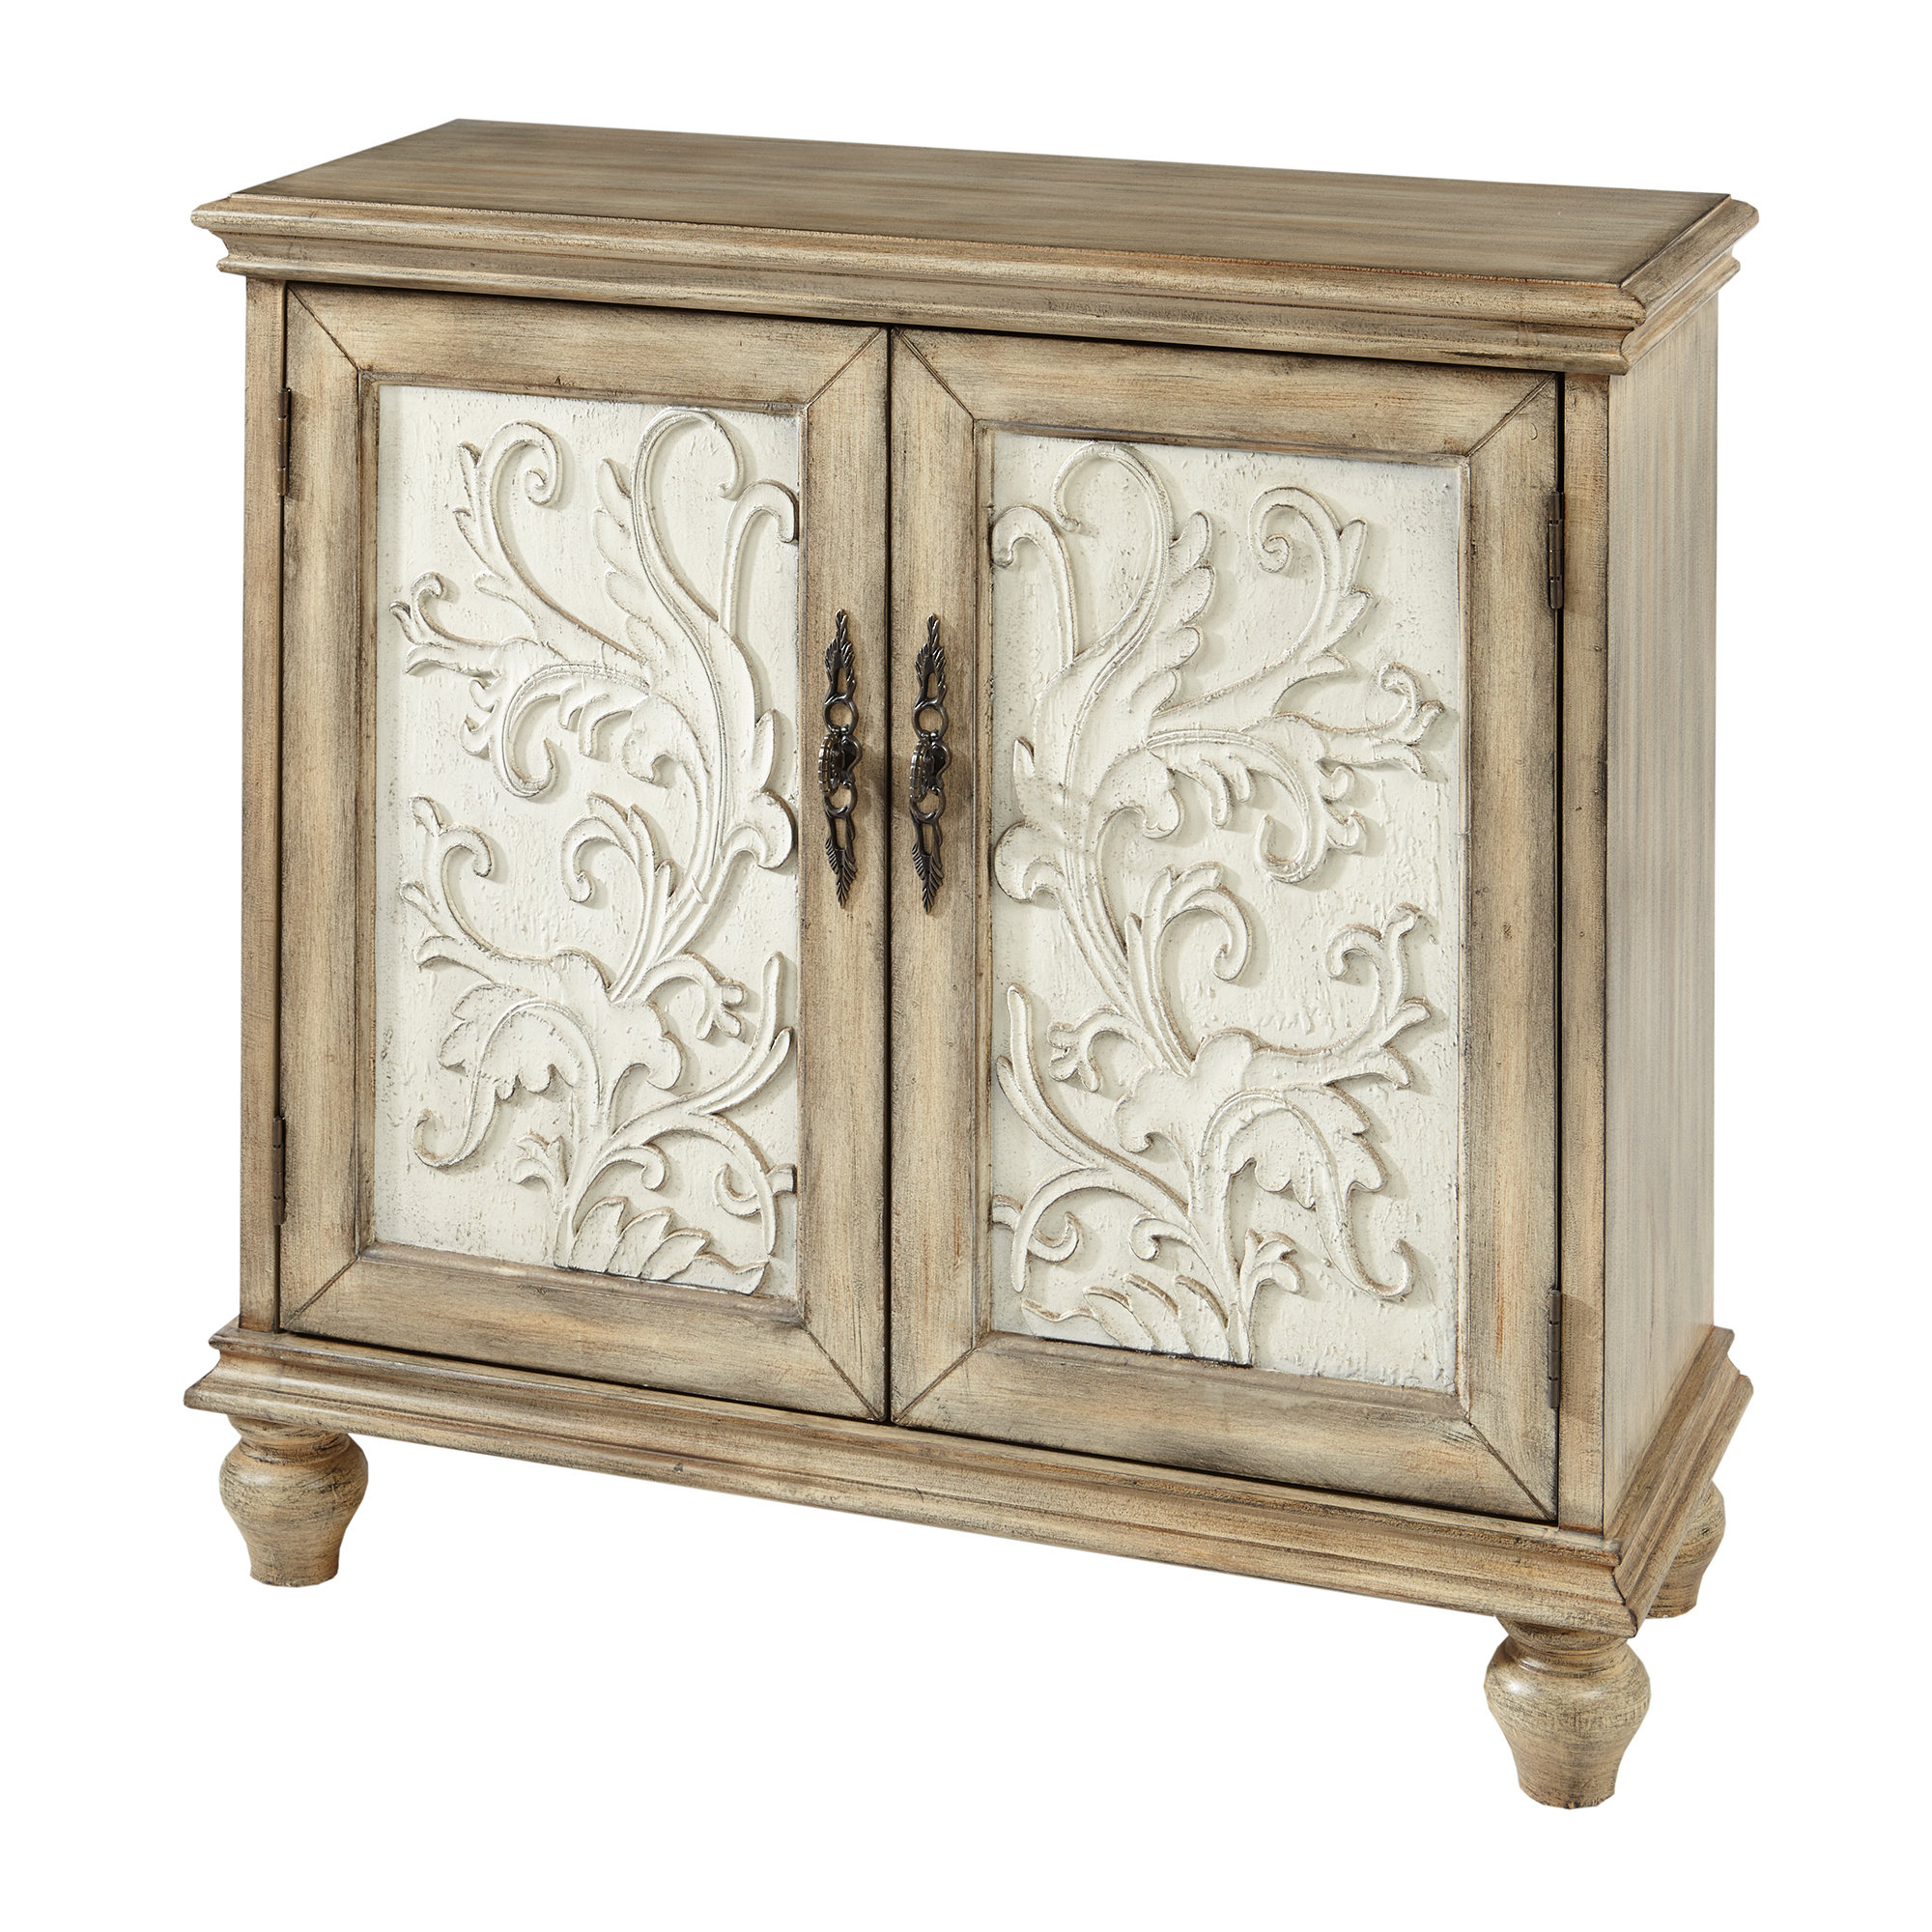 Farmhouse & Rustic Accent Chests & Cabinets | Birch Lane Regarding Eau Claire 6 Door Accent Cabinets (View 12 of 20)